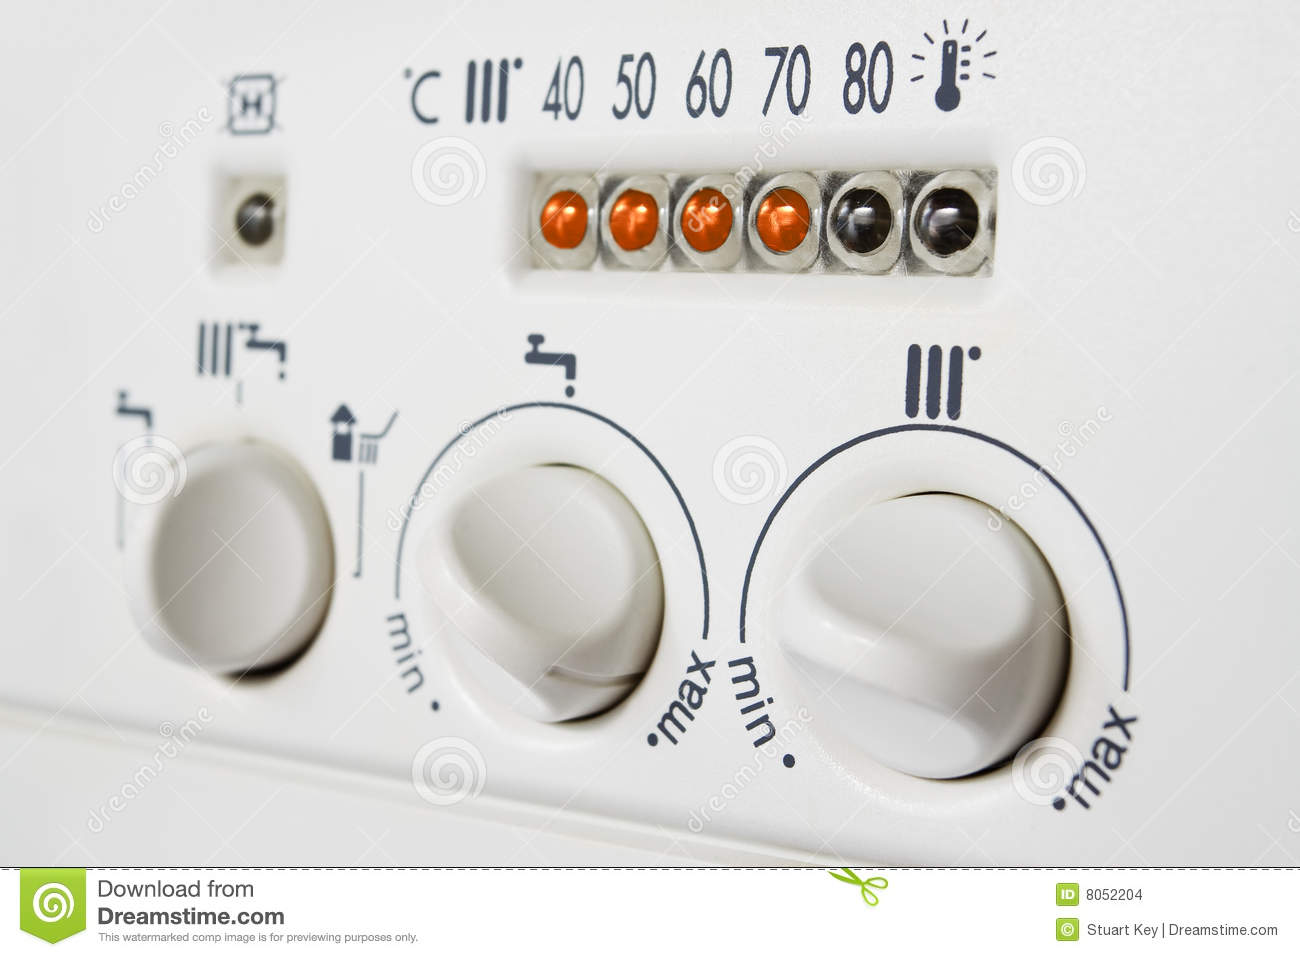 Central Heating Boiler Controls Stock Photo - Image of domestic ...